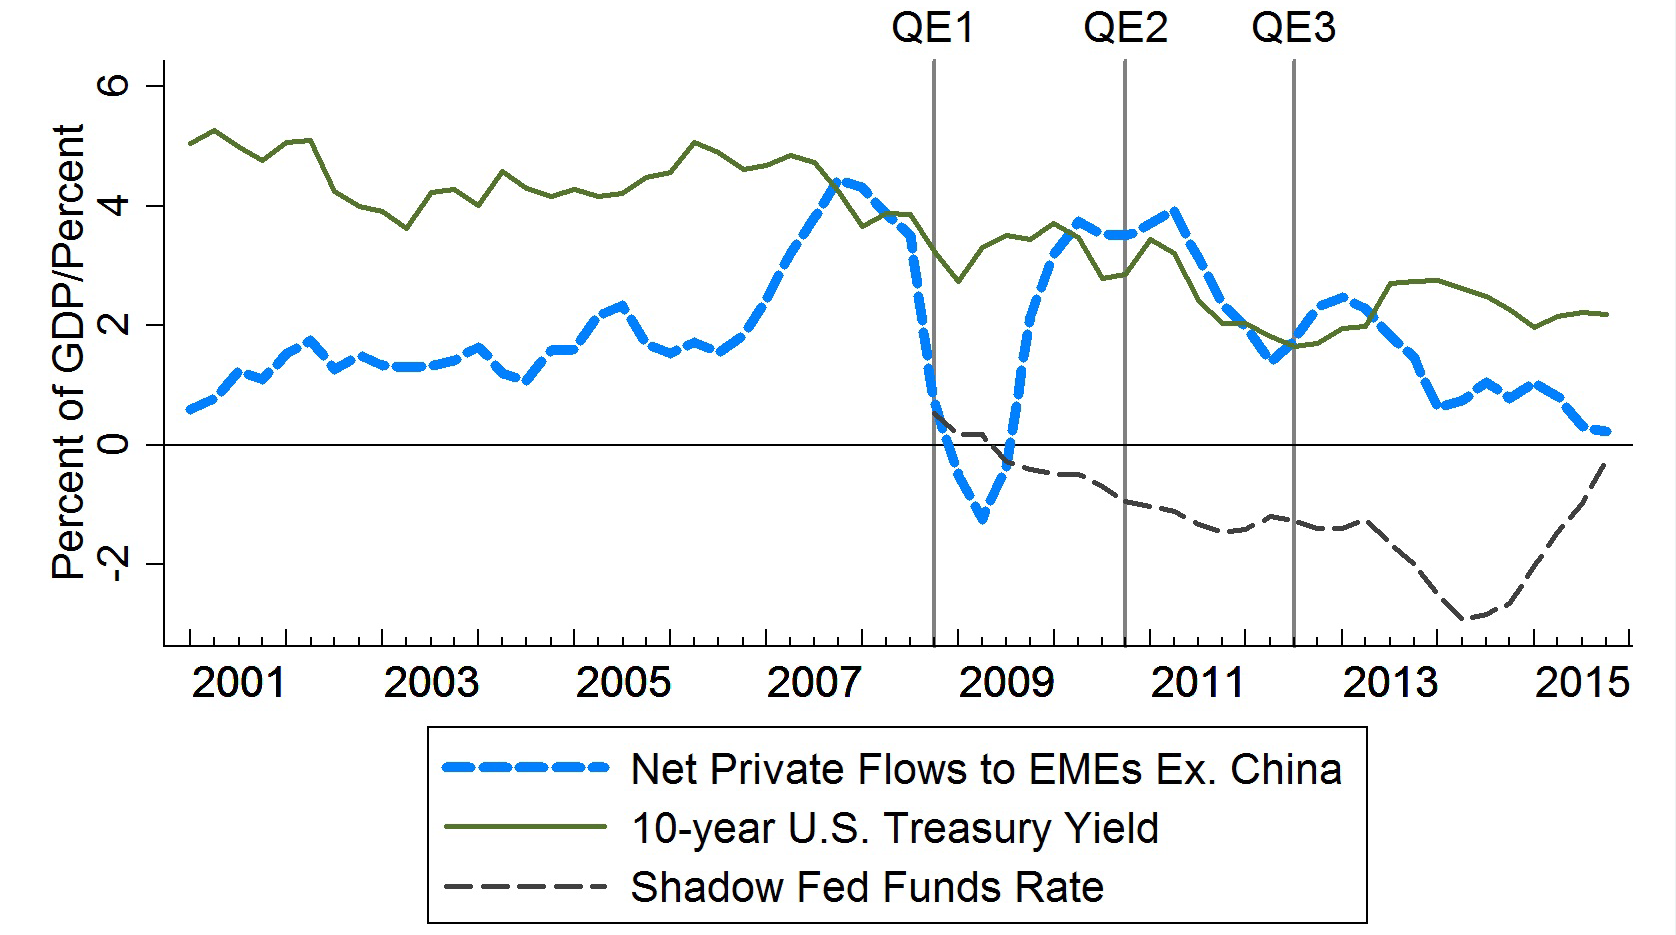 Frb emerging market capital flows and us monetary policy chart 5 net private flows and us interest rates nvjuhfo Gallery